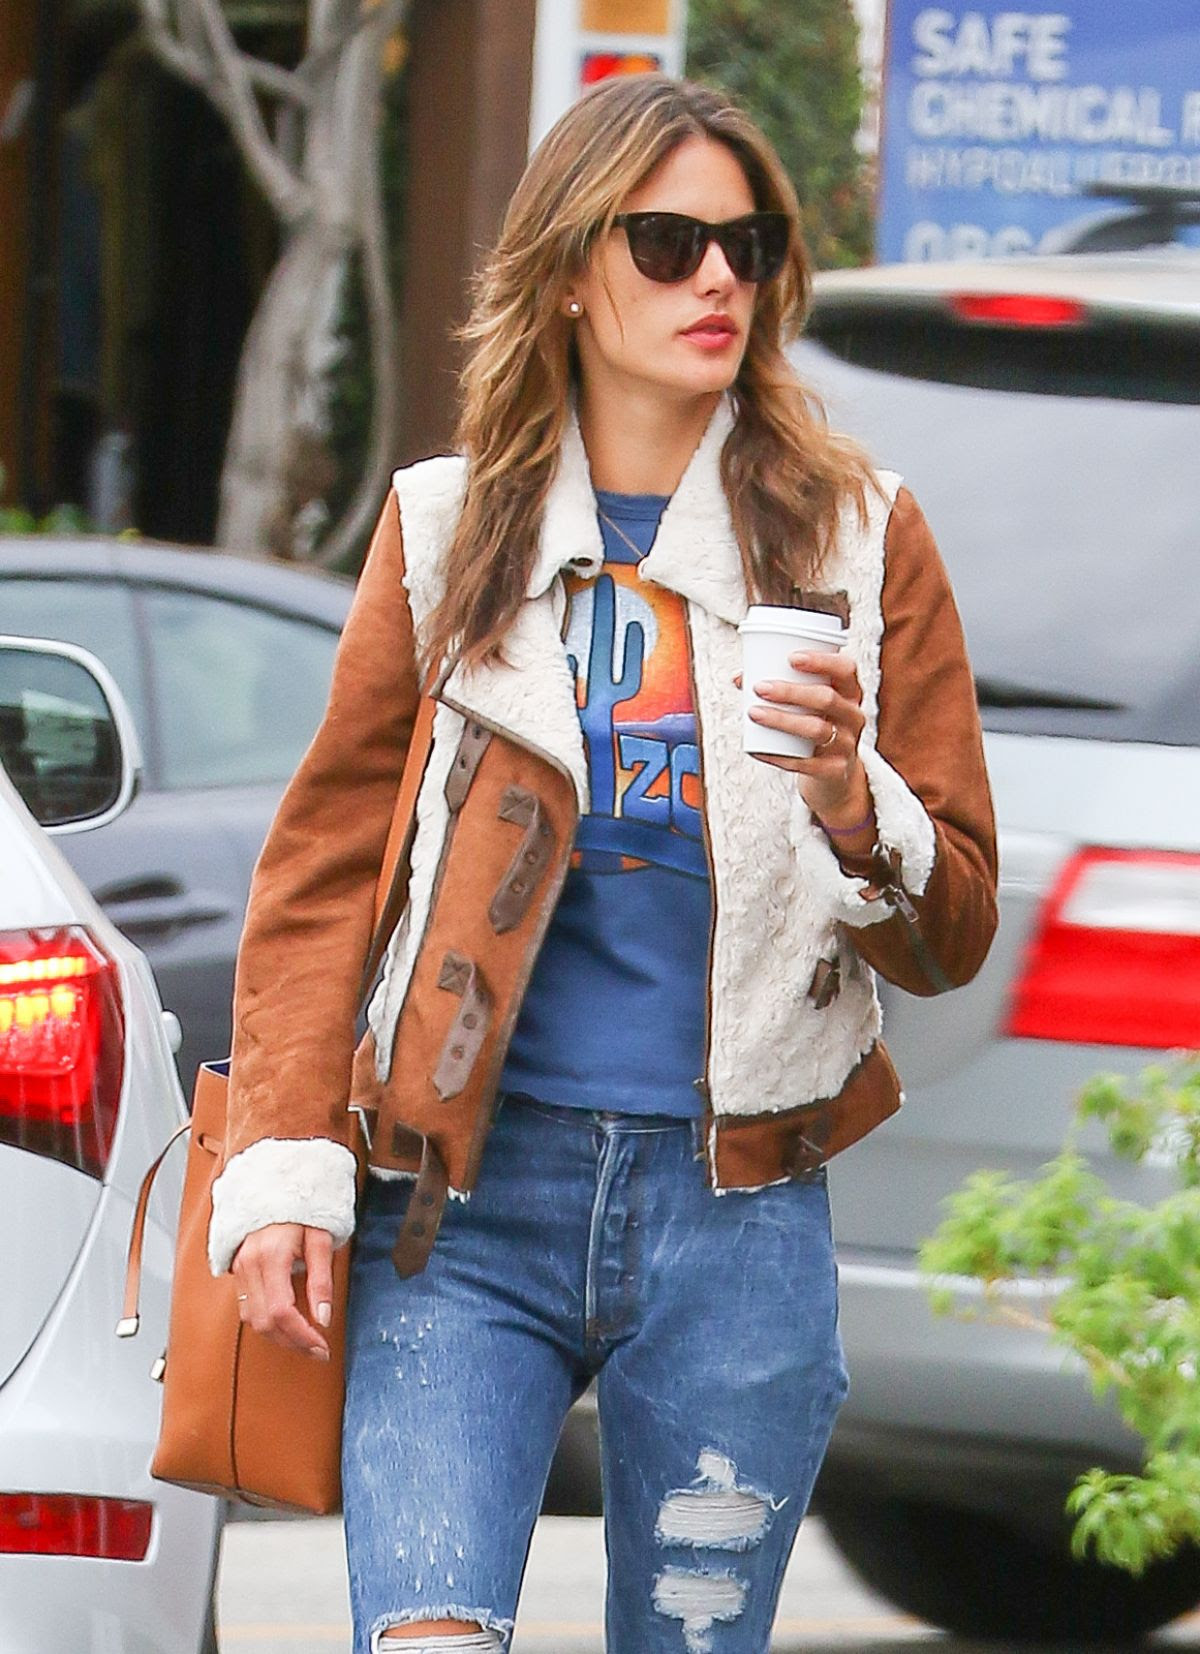 ALESSANDRA AMBROSIO in Ripped Jeans Out and About in Brentwood